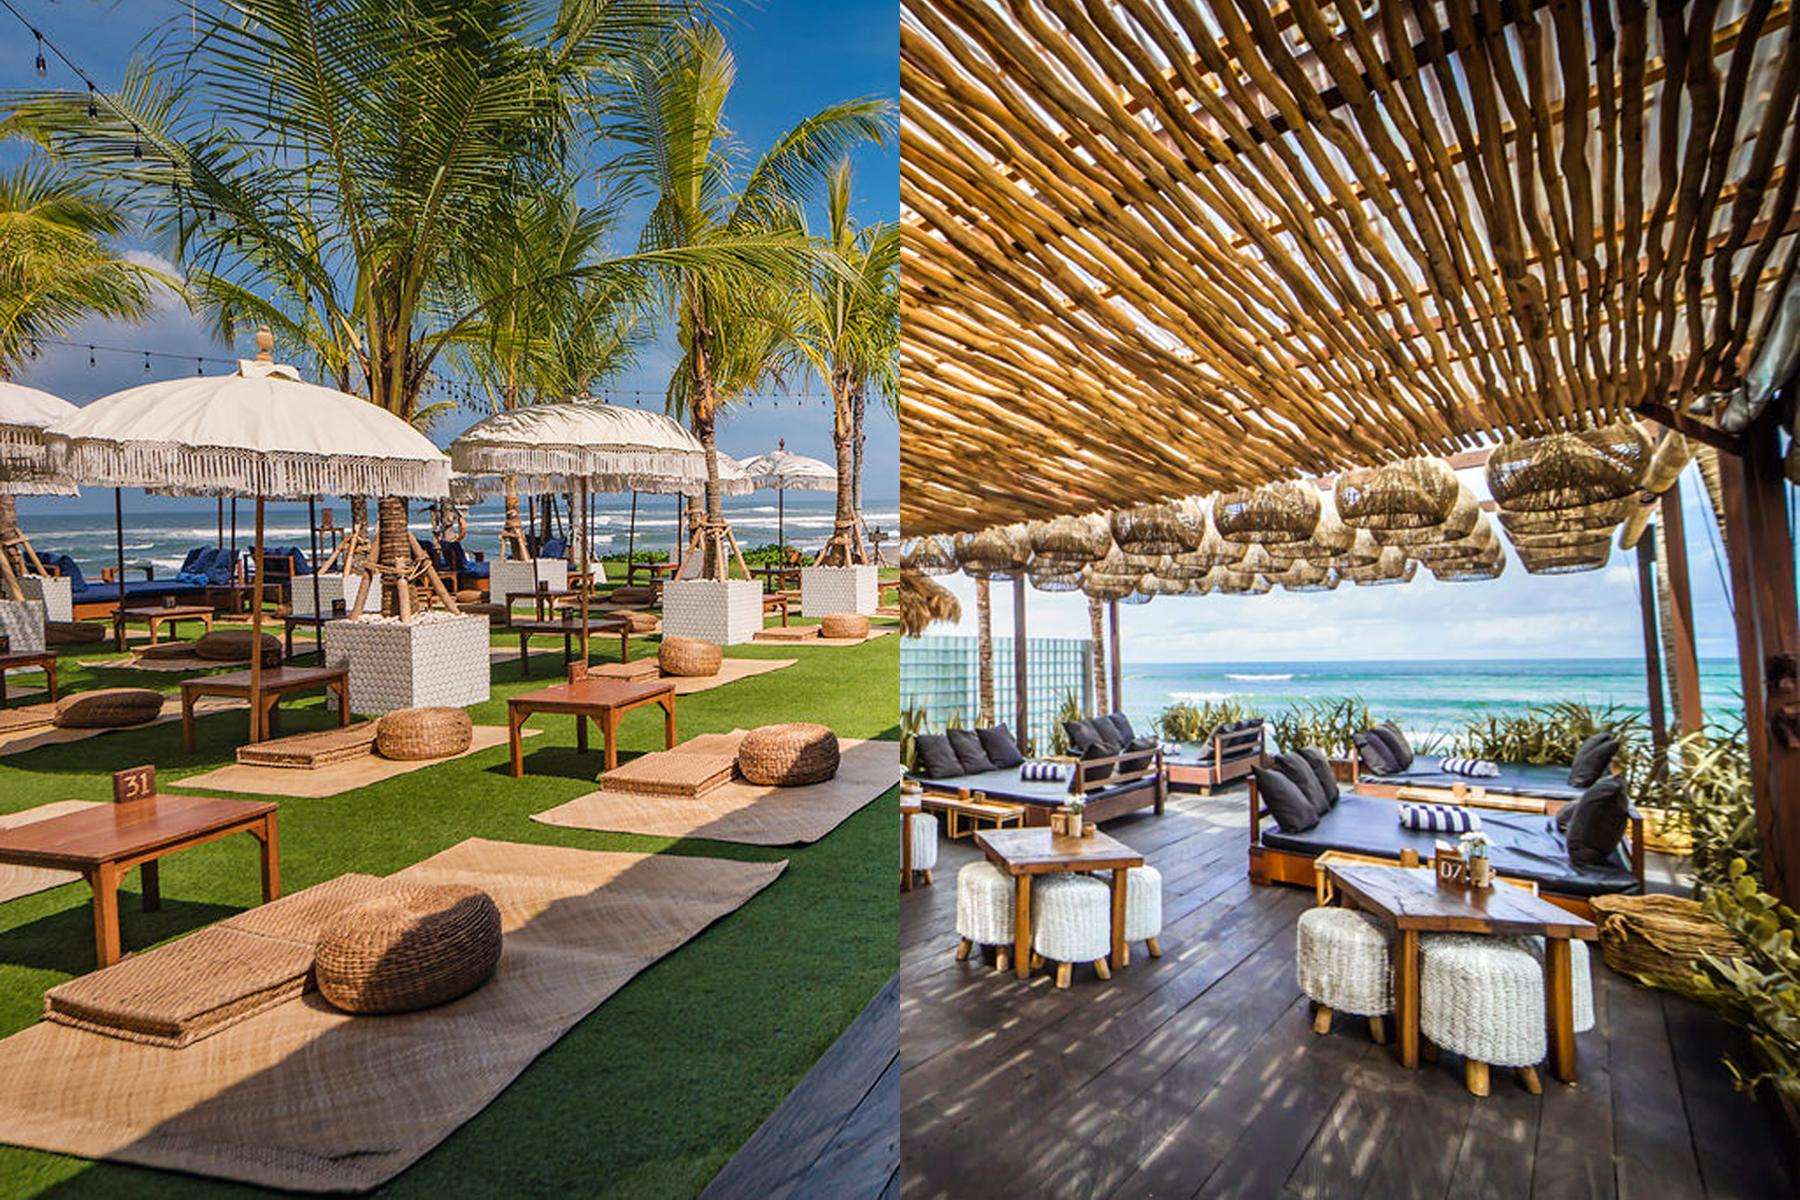 Bali S Best Beach Clubs For Sun Swimming And Food And